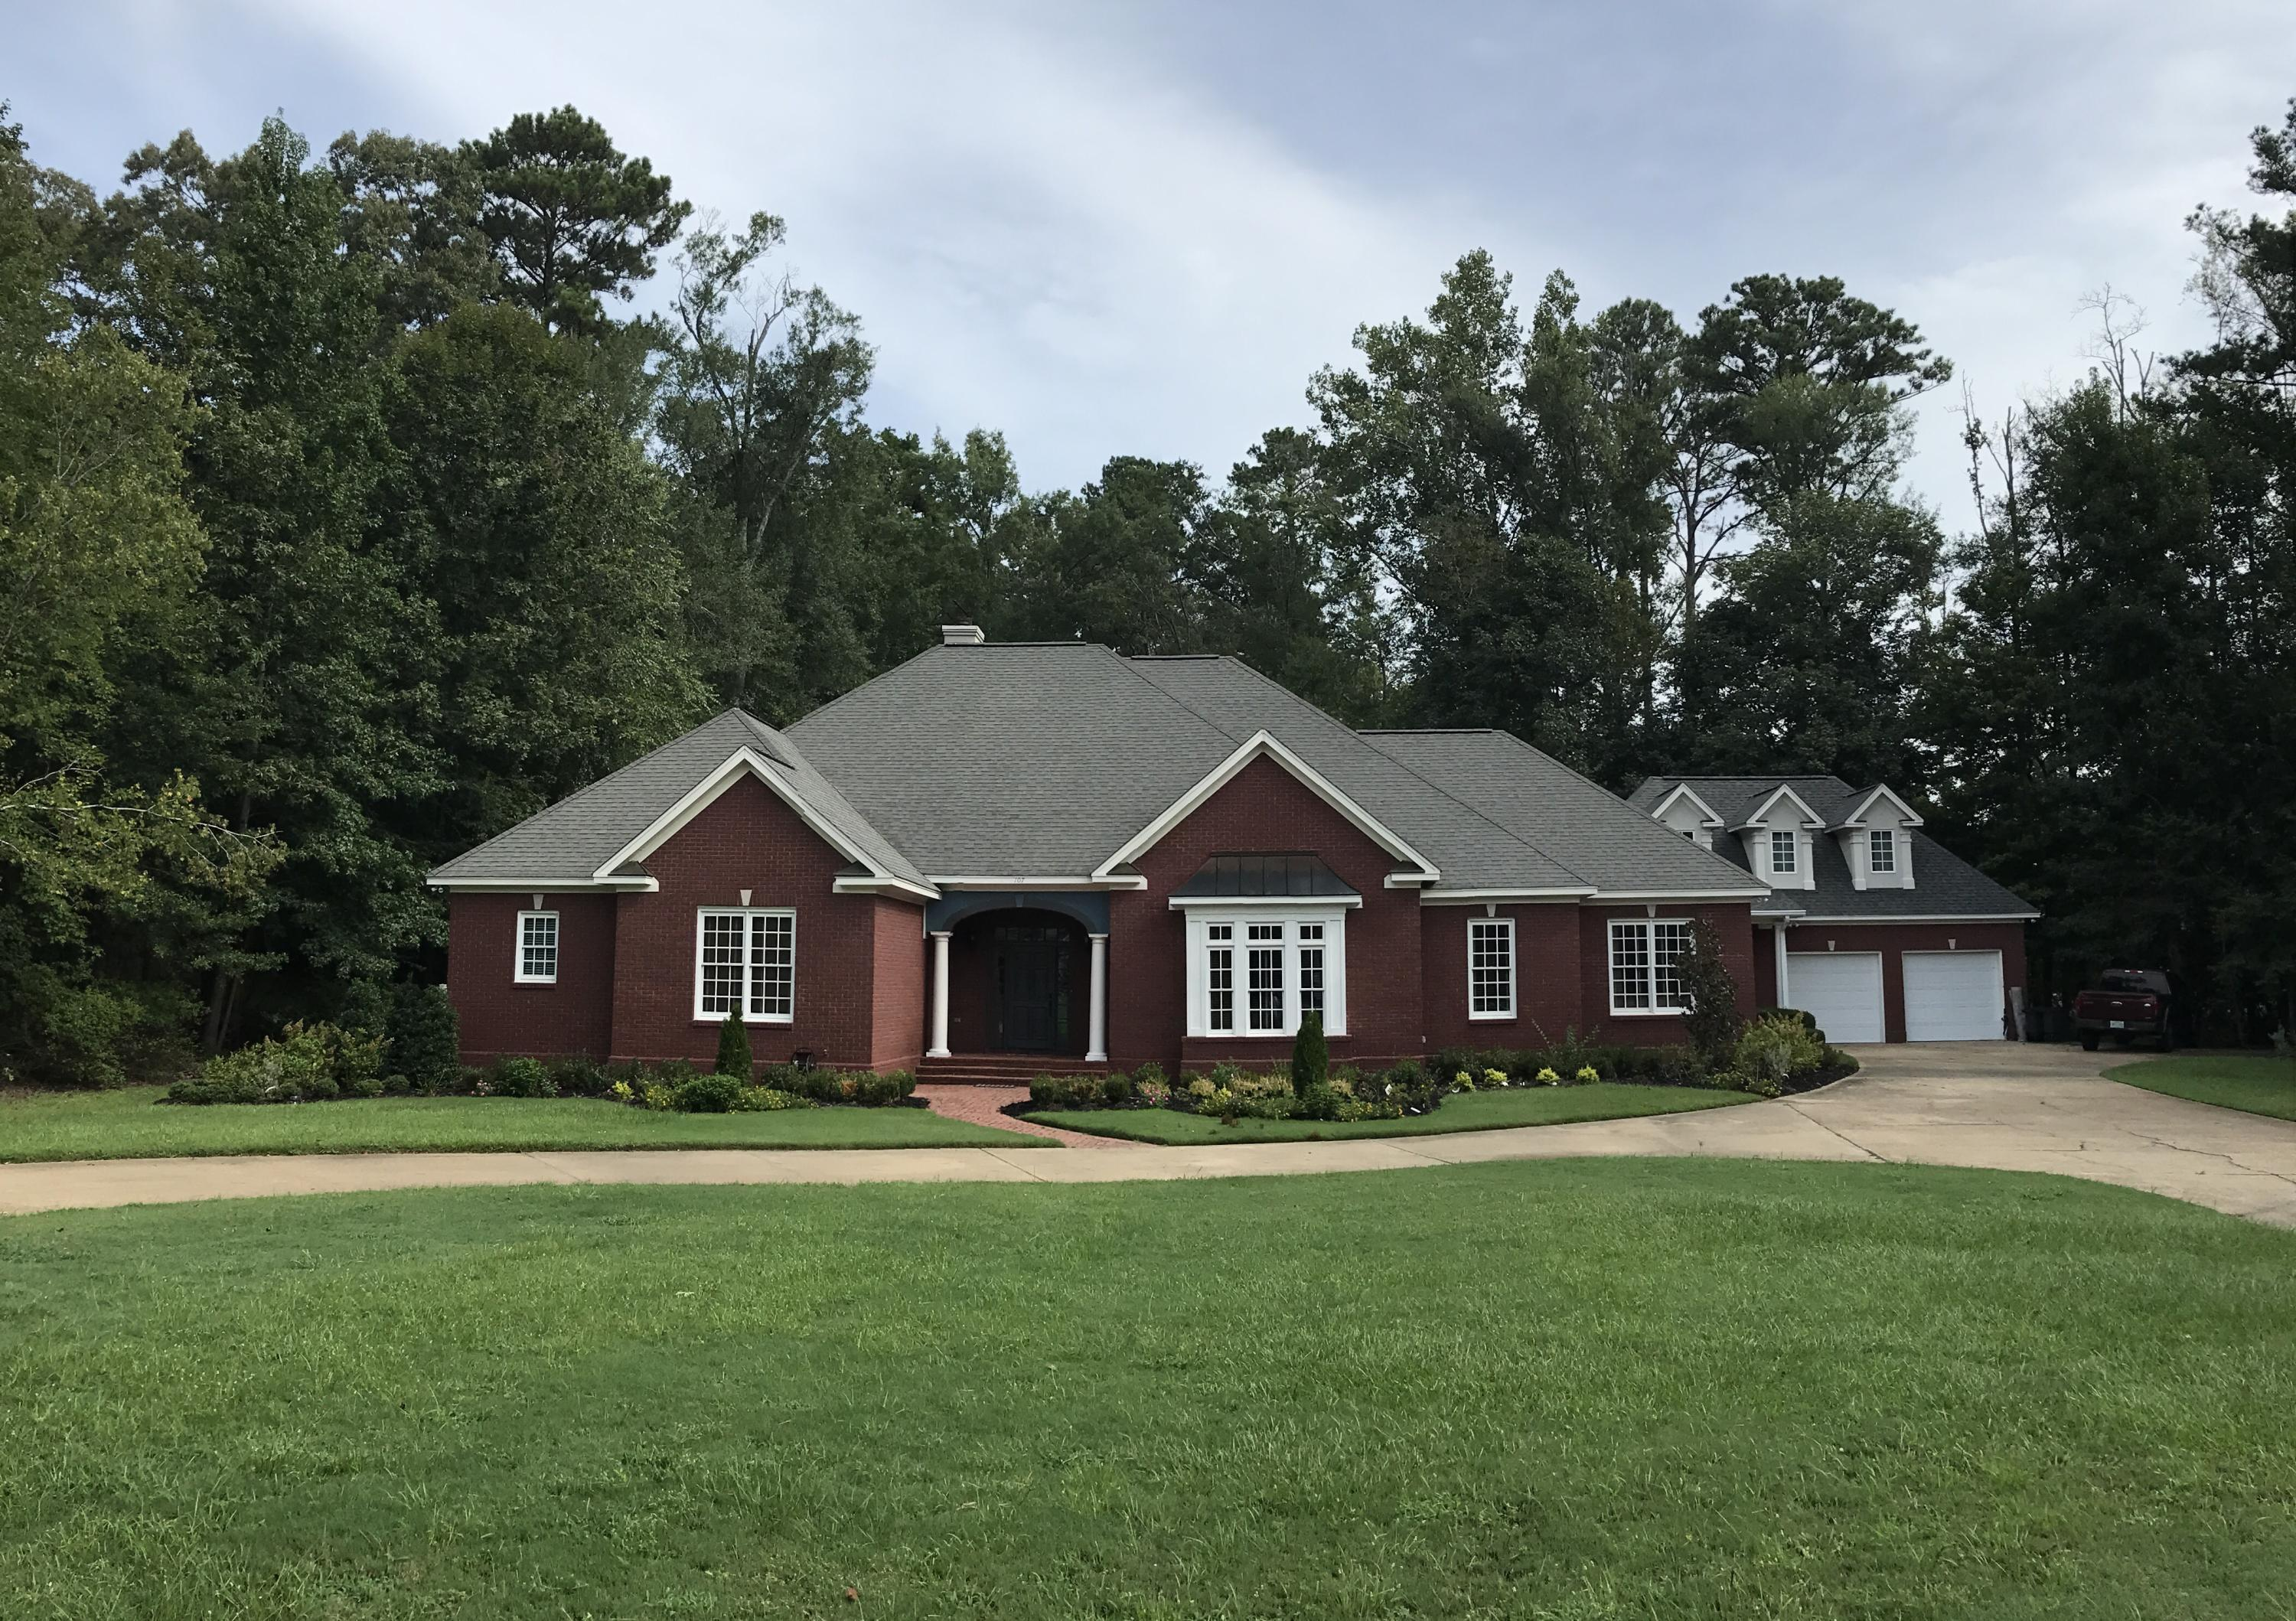 4 bed / 3 5 baths Home in Columbus for $529,000